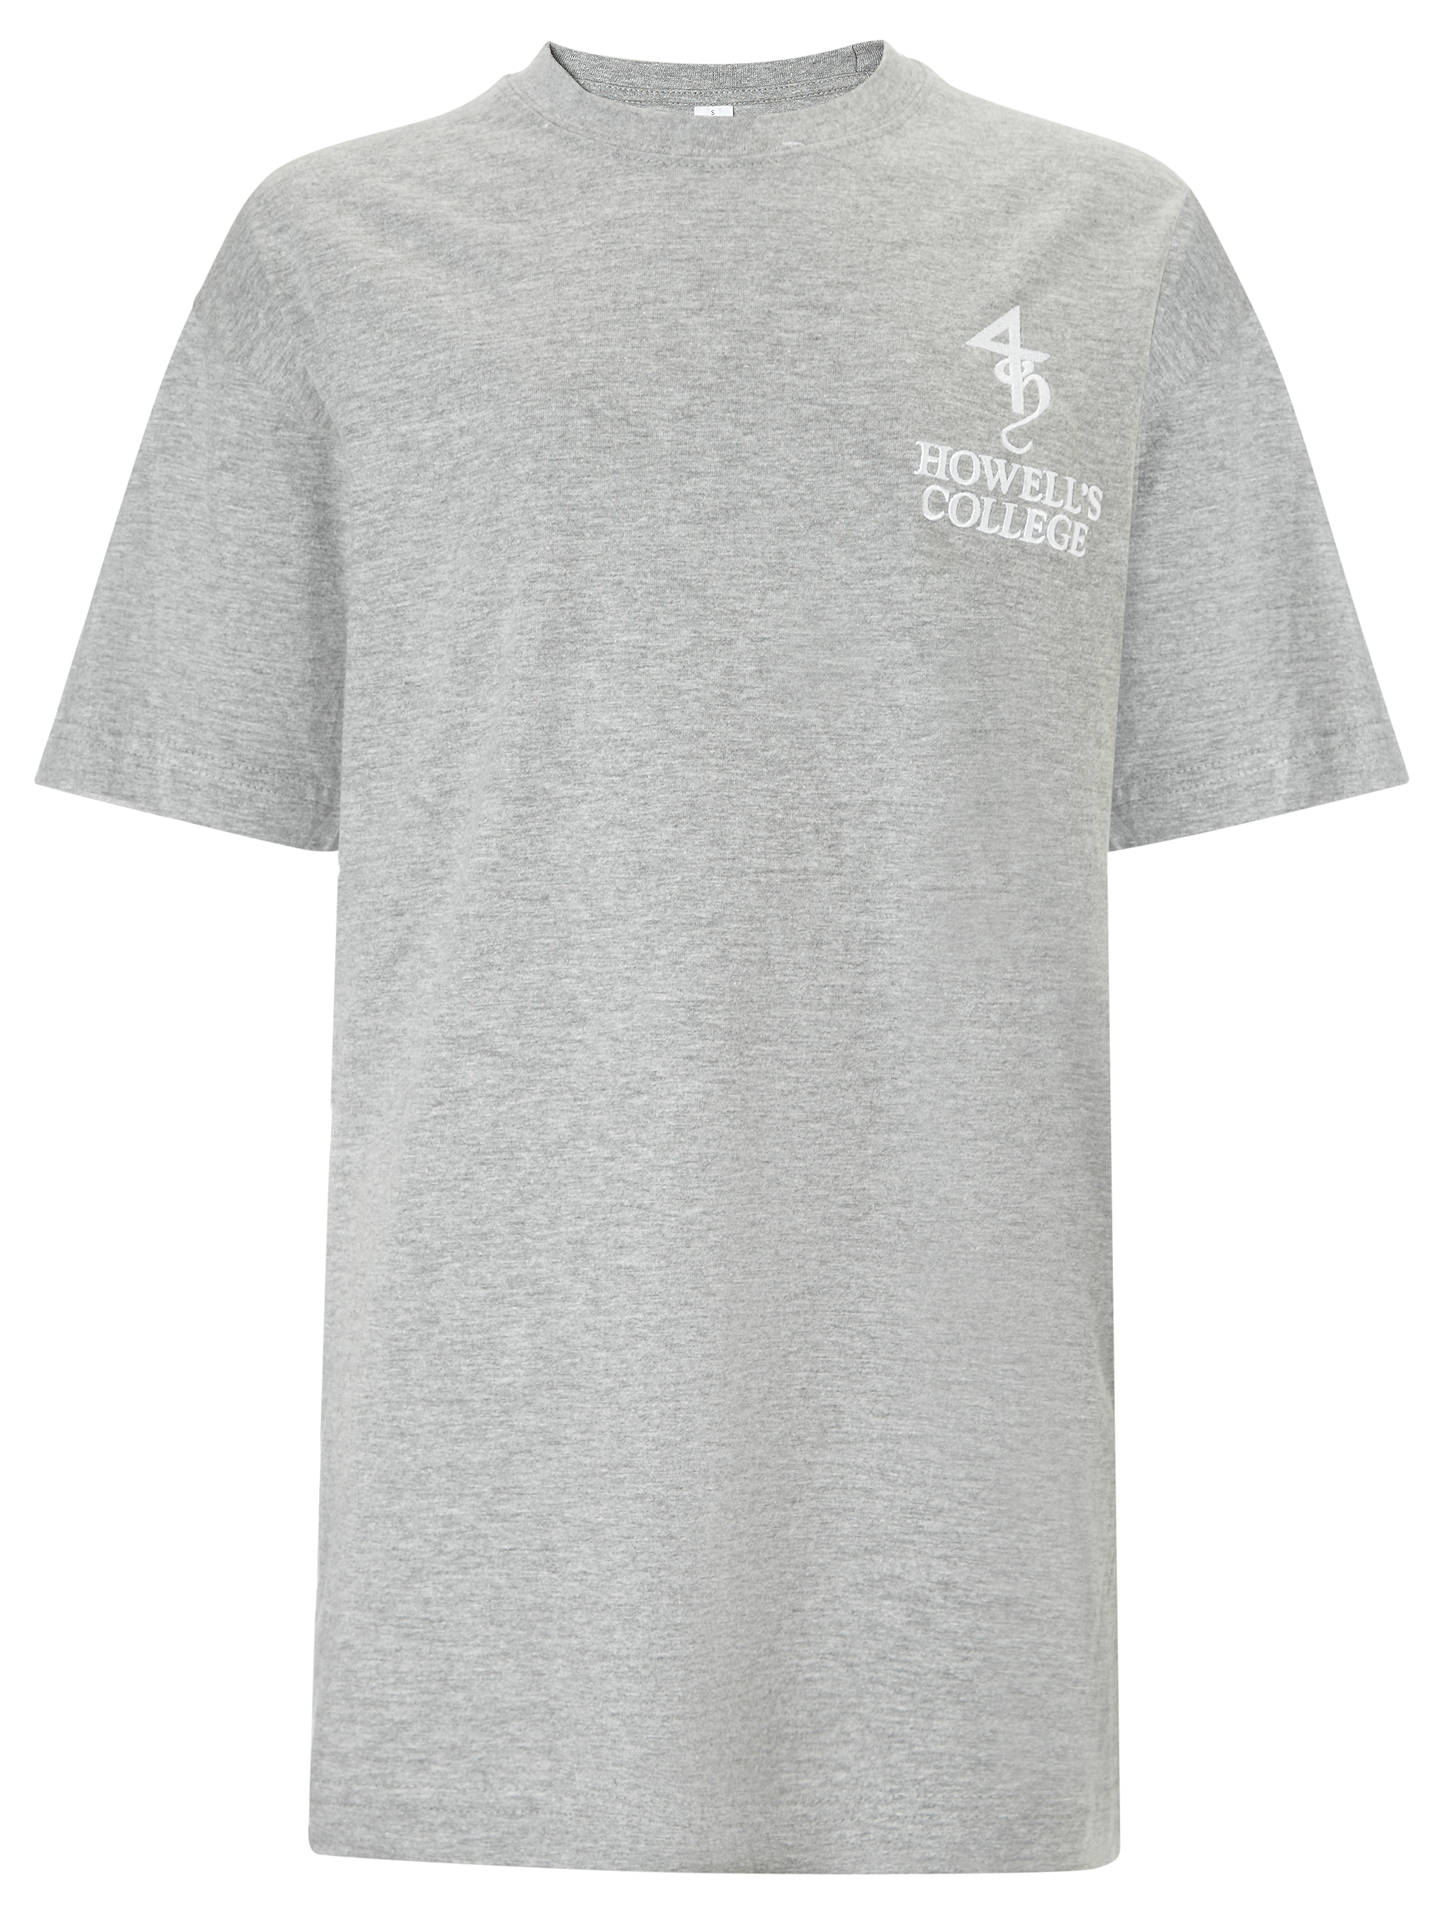 Buy Howell's College Unisex T-Shirt, Grey, S Online at johnlewis.com